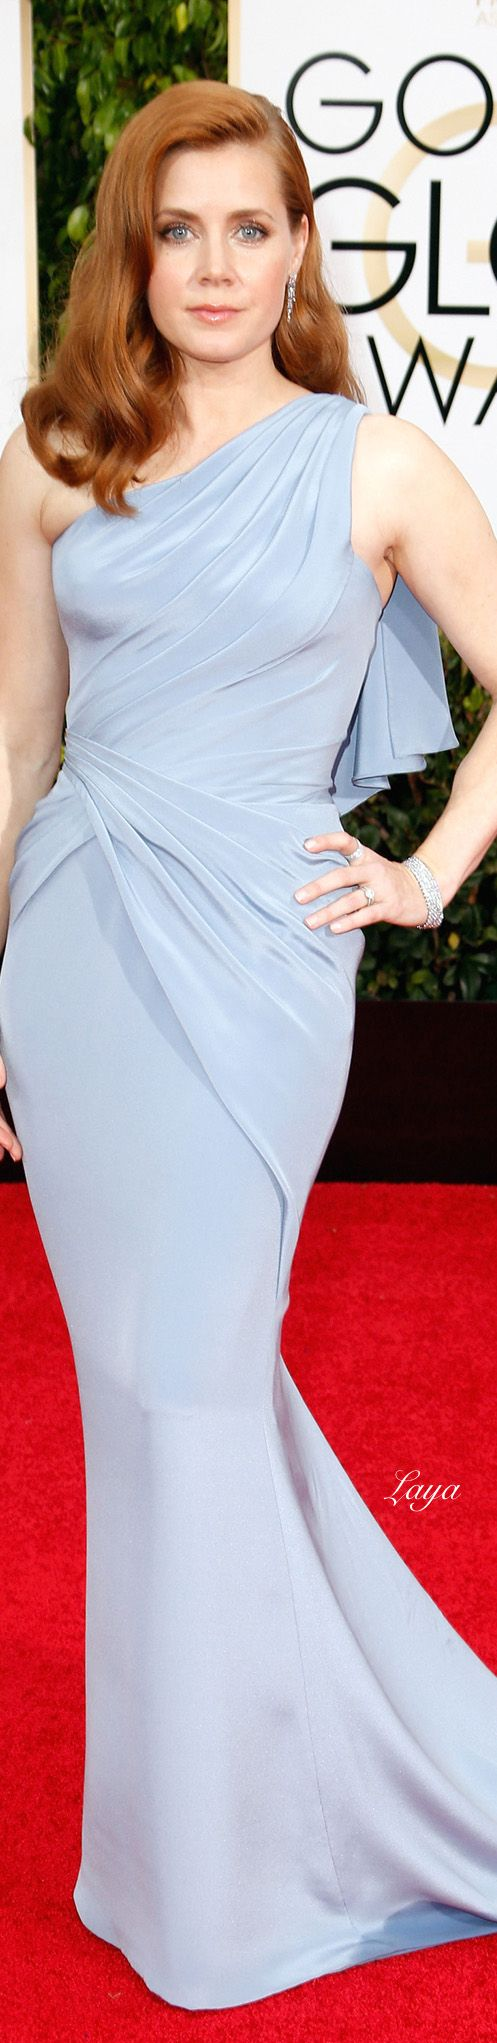 The 2015 Golden Globe Awards: Amy Adams, in Atelier Versace